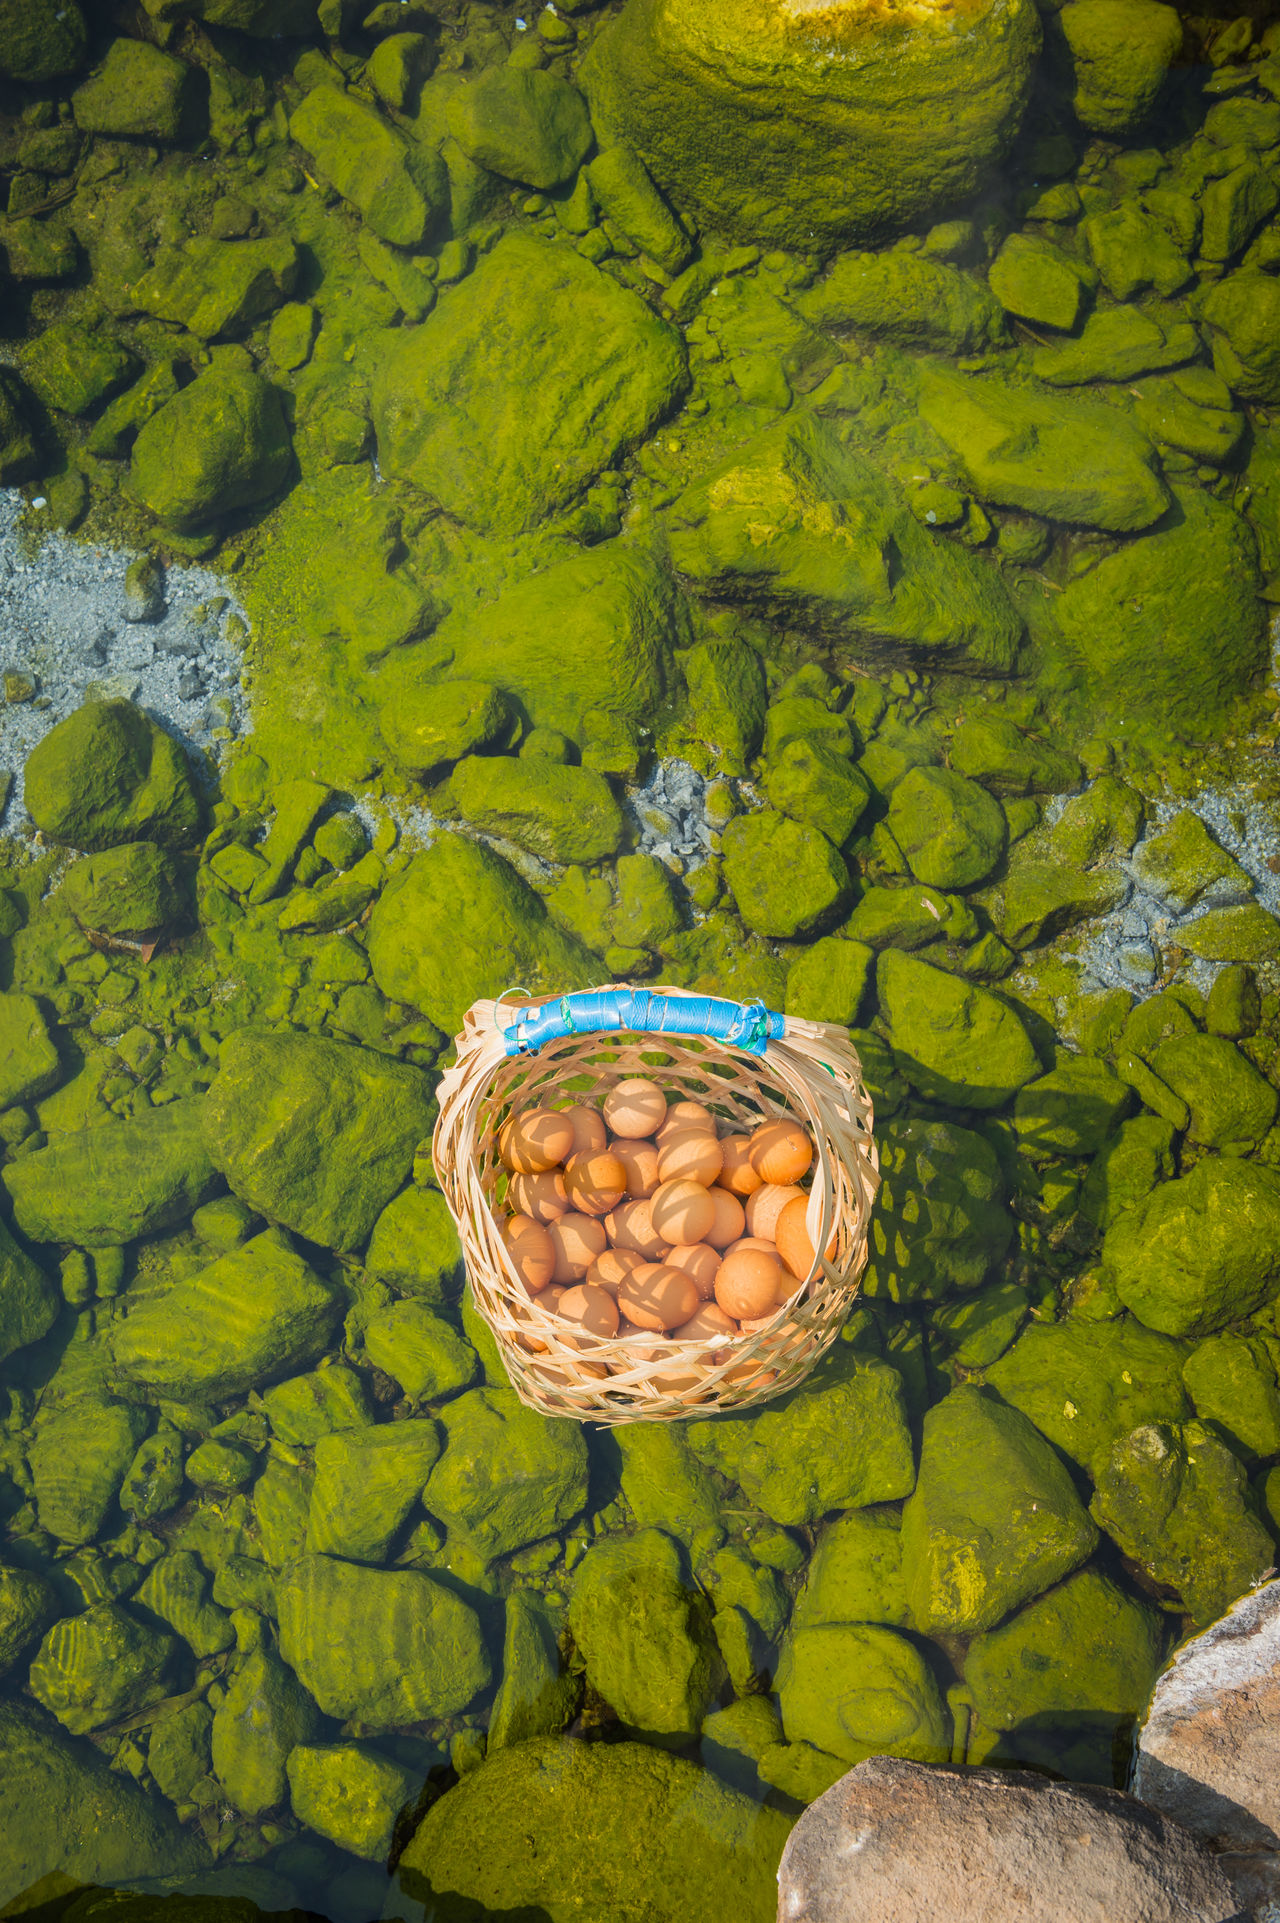 Boil egg in hot springs Basket Beauty In Nature Day Egg Food Food And Drink Green Green Color Ground Group Of Objects Healthy Eating Healthy Food Hot Spring Natural Nature No People Object Onsen Onsen Egg Outdoors Transparent Travel Water